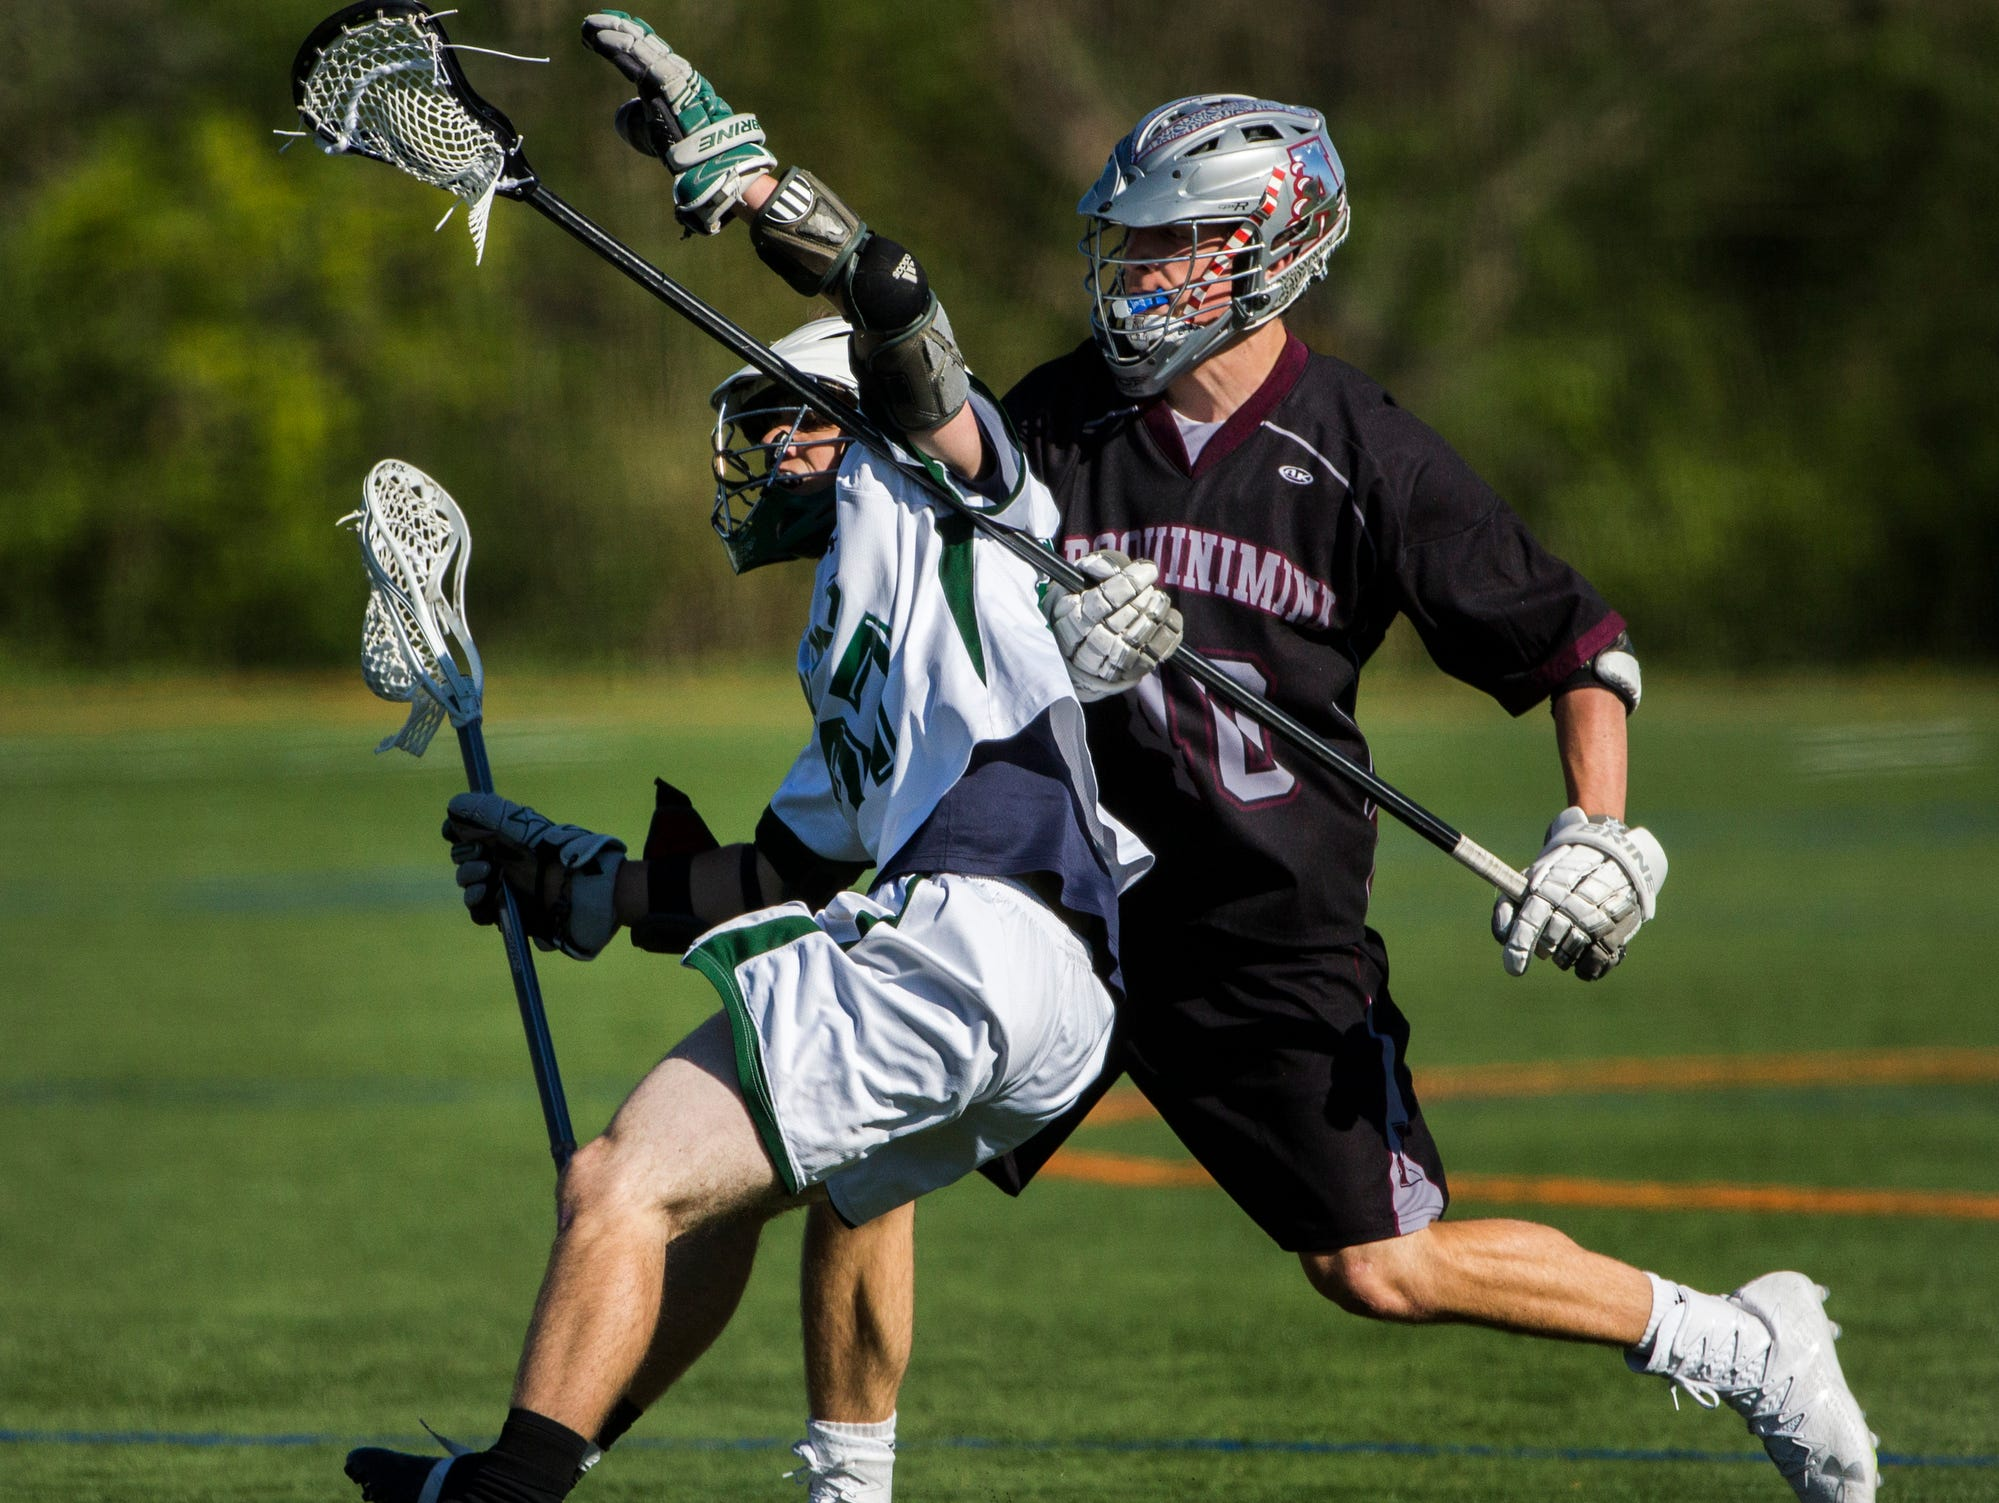 Archmere's Benjamin Revak (left) works against Appoquinimink's Dominic Berrera in the second quarter of Appoquinimink's 13-12 win over Archmere at Archmere Academy on Wednesday afternoon.